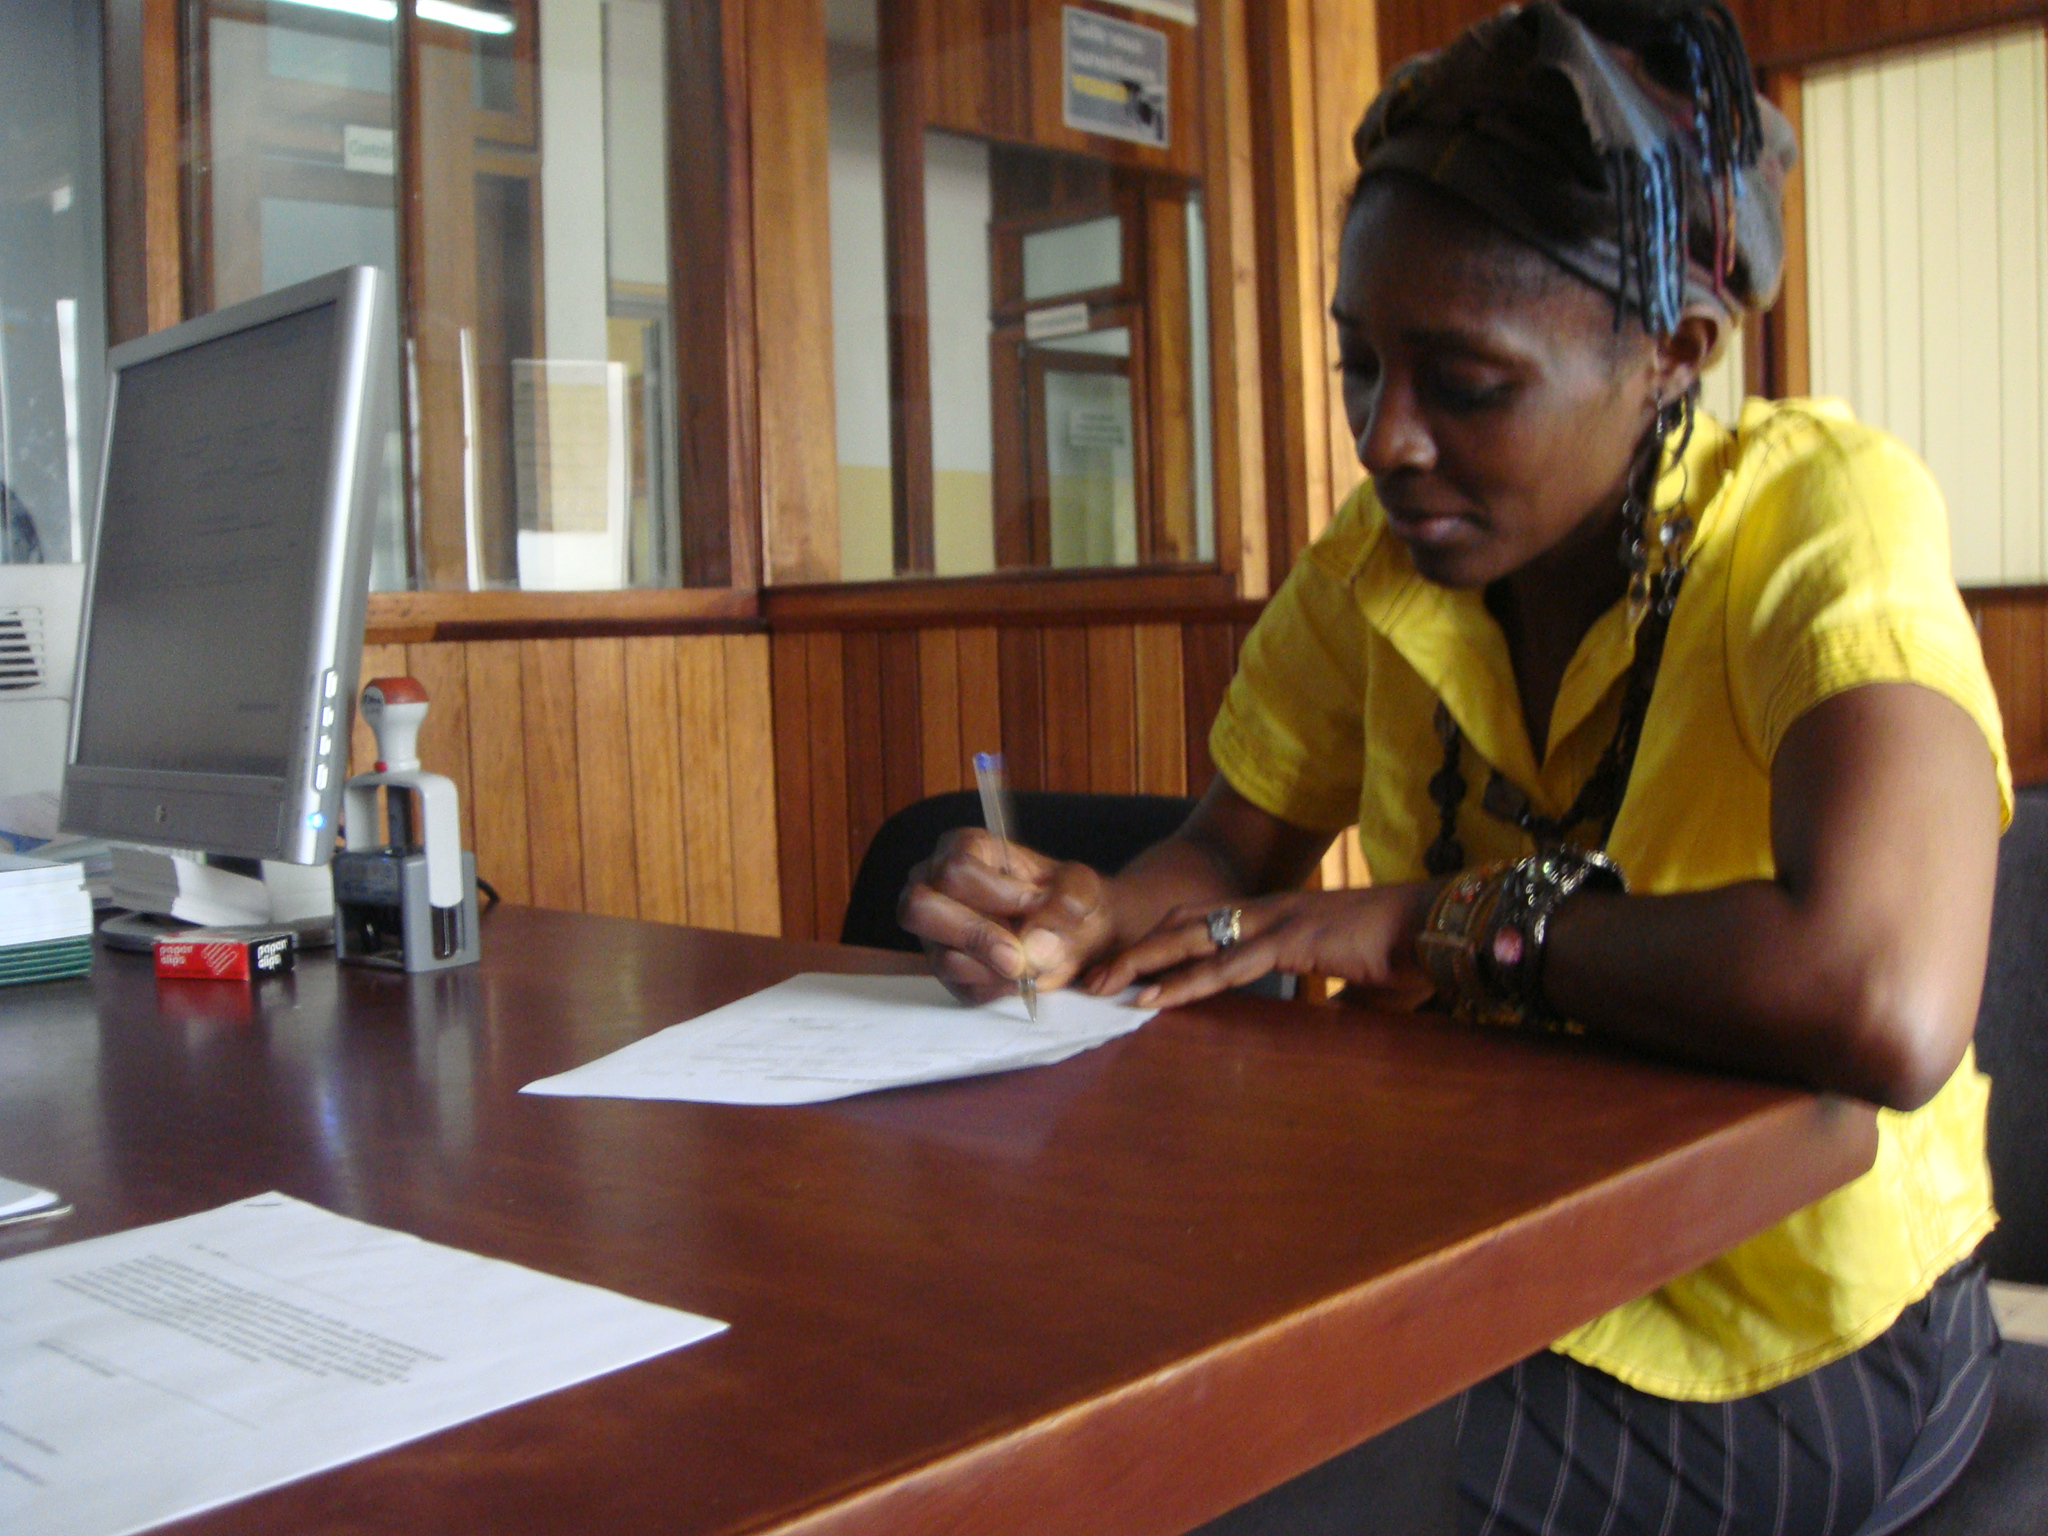 ACEP Cameroun's first Kiva borrower - Natalie Sherman, Cameroon